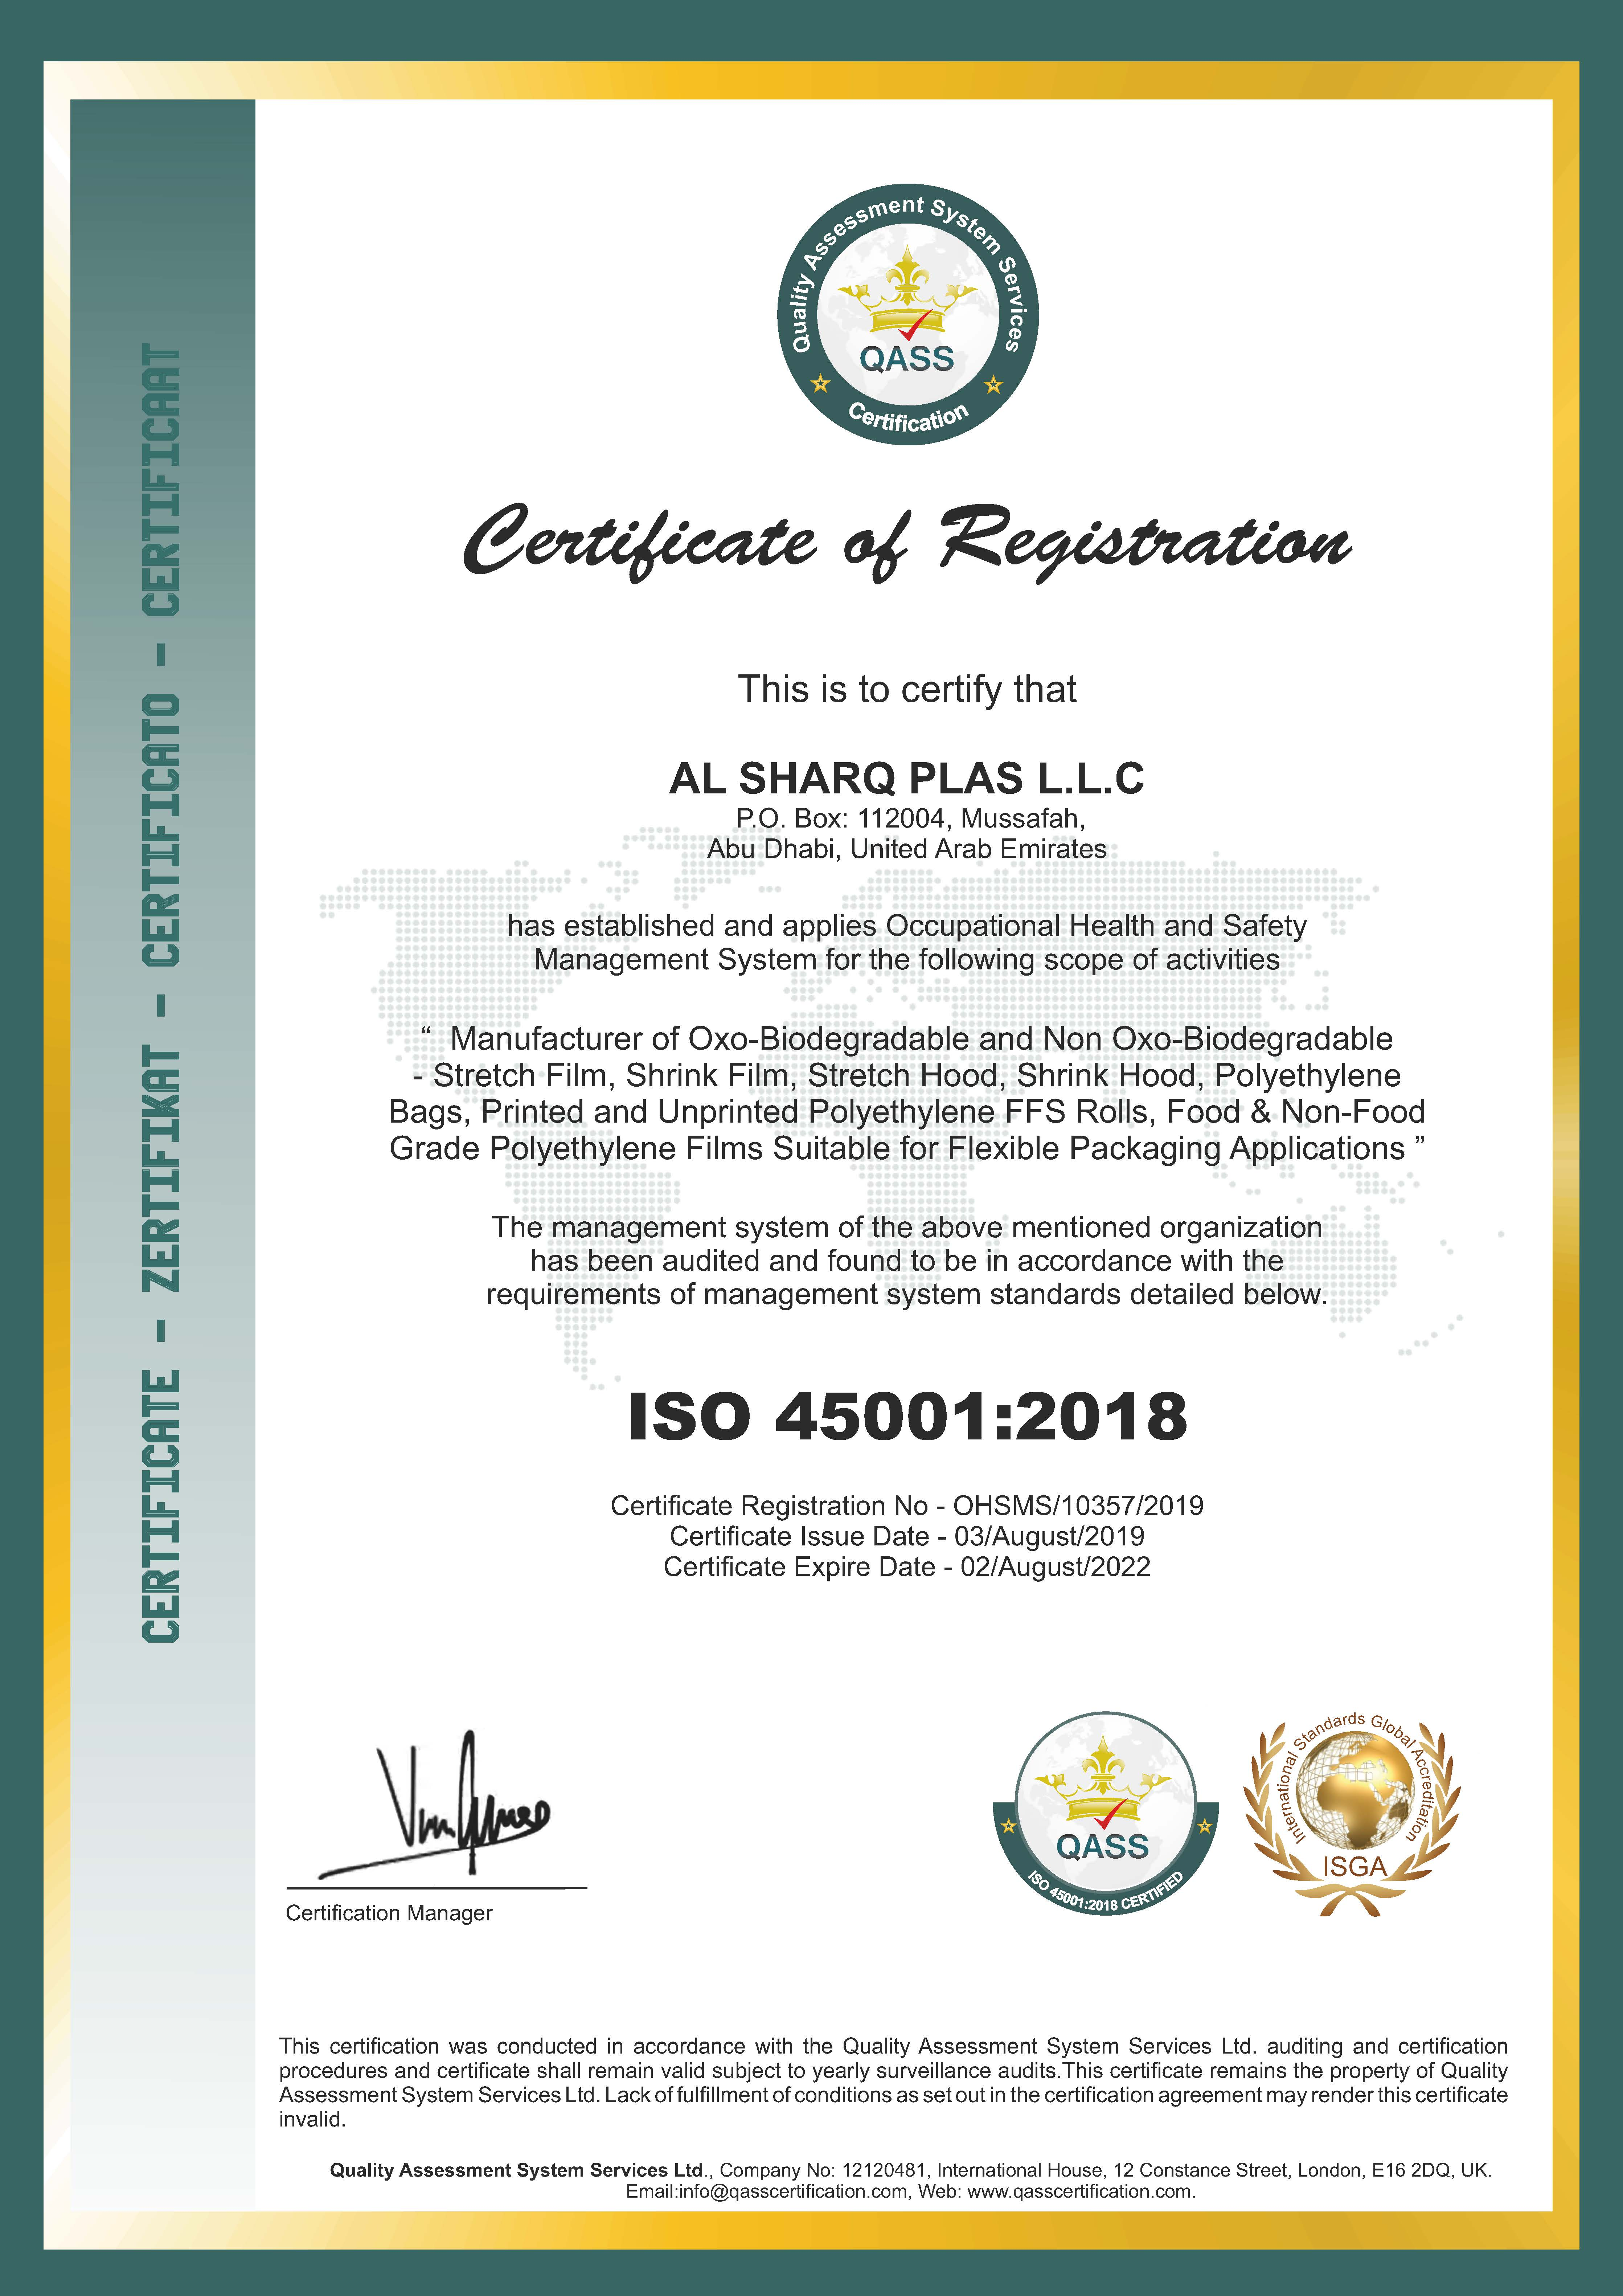 ISO 45001 CERTIFICATE